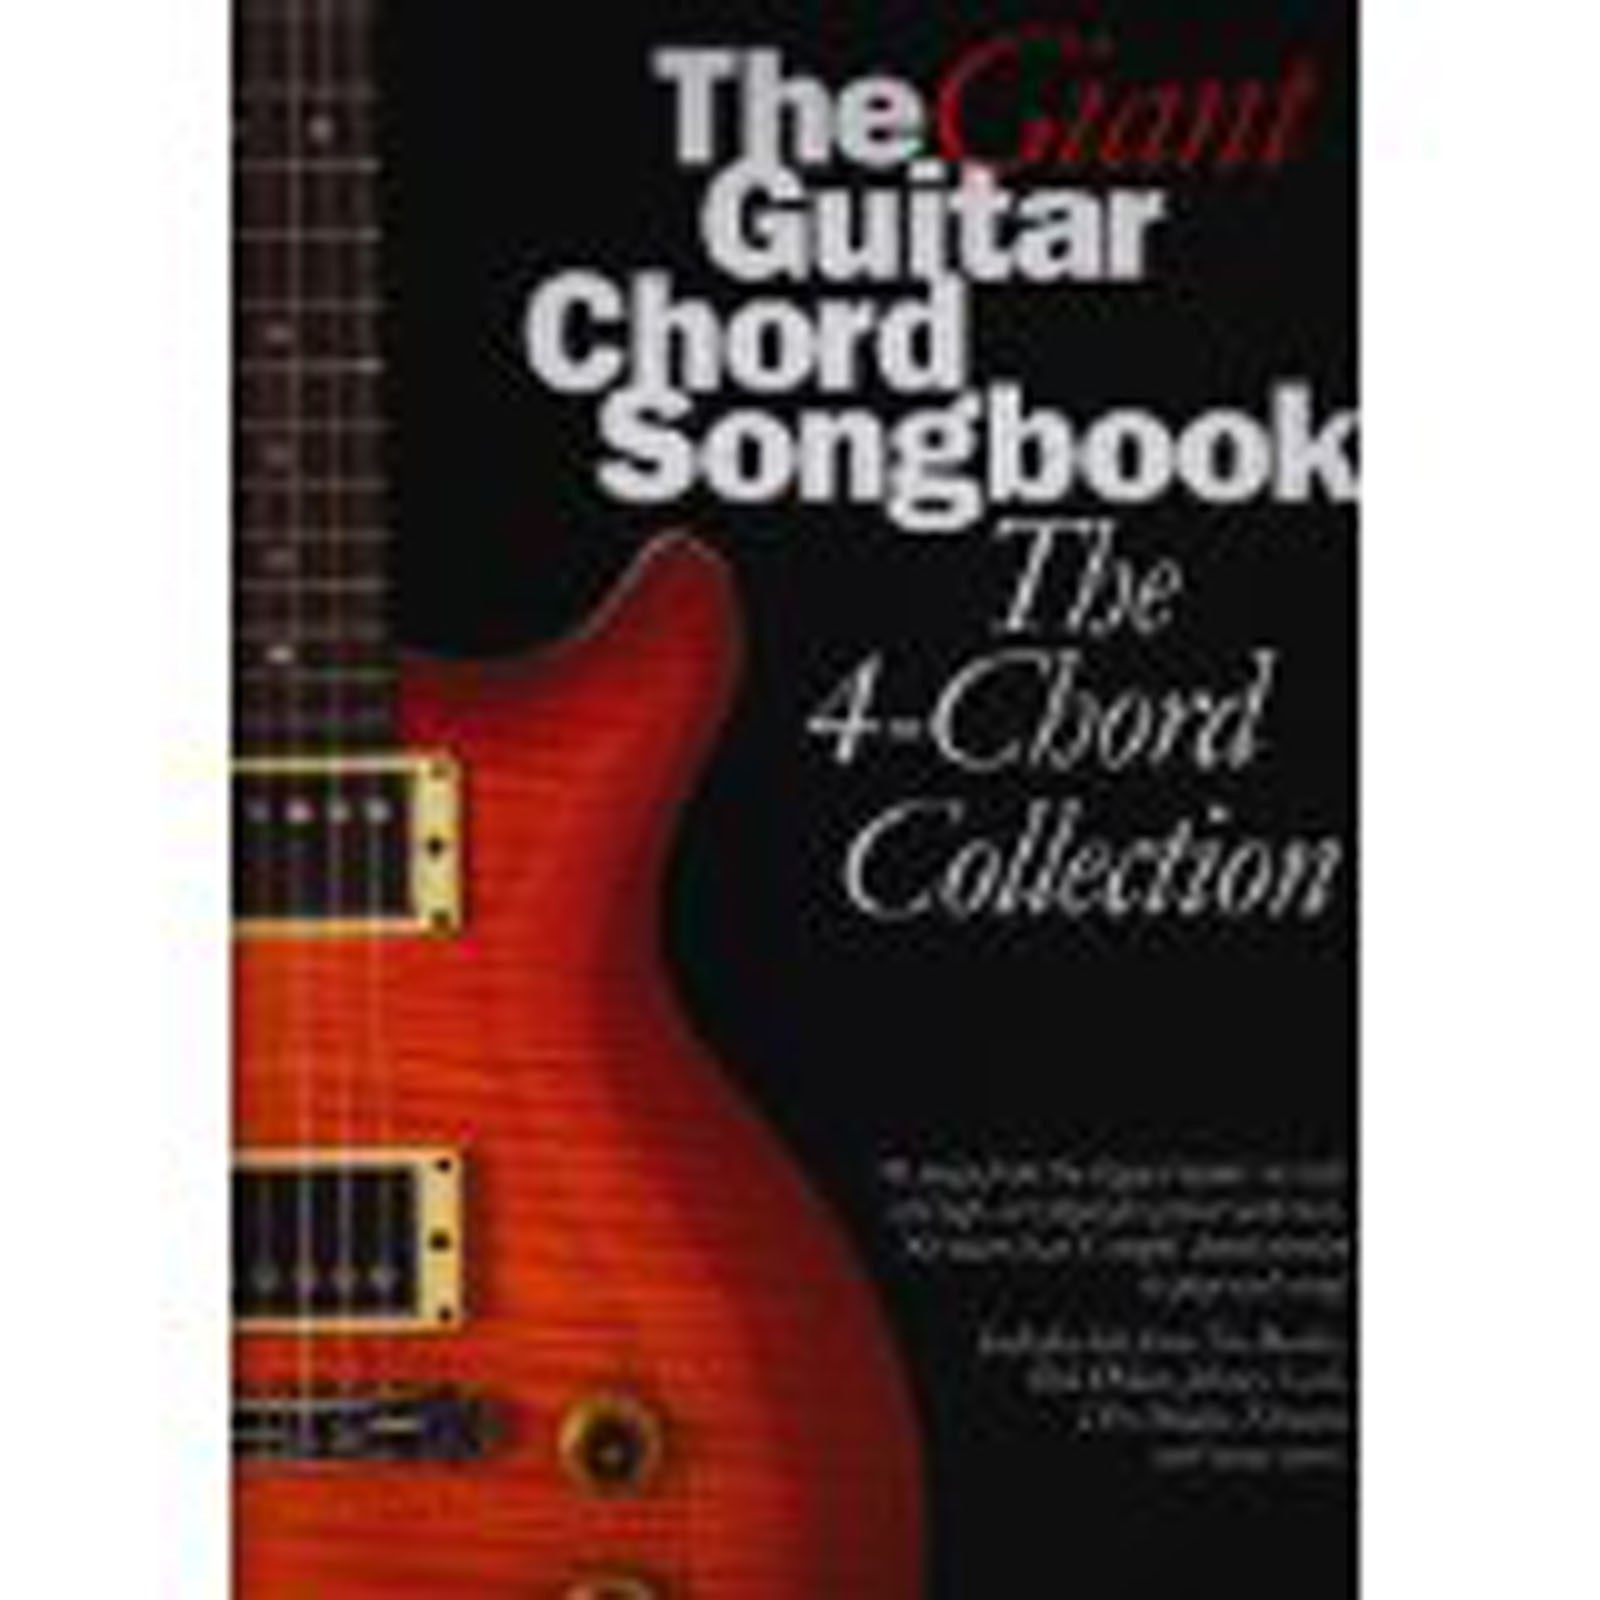 Giant Guitar Chord Songbook 4-Chord Collection Classic Sheet Music Book B59 S57